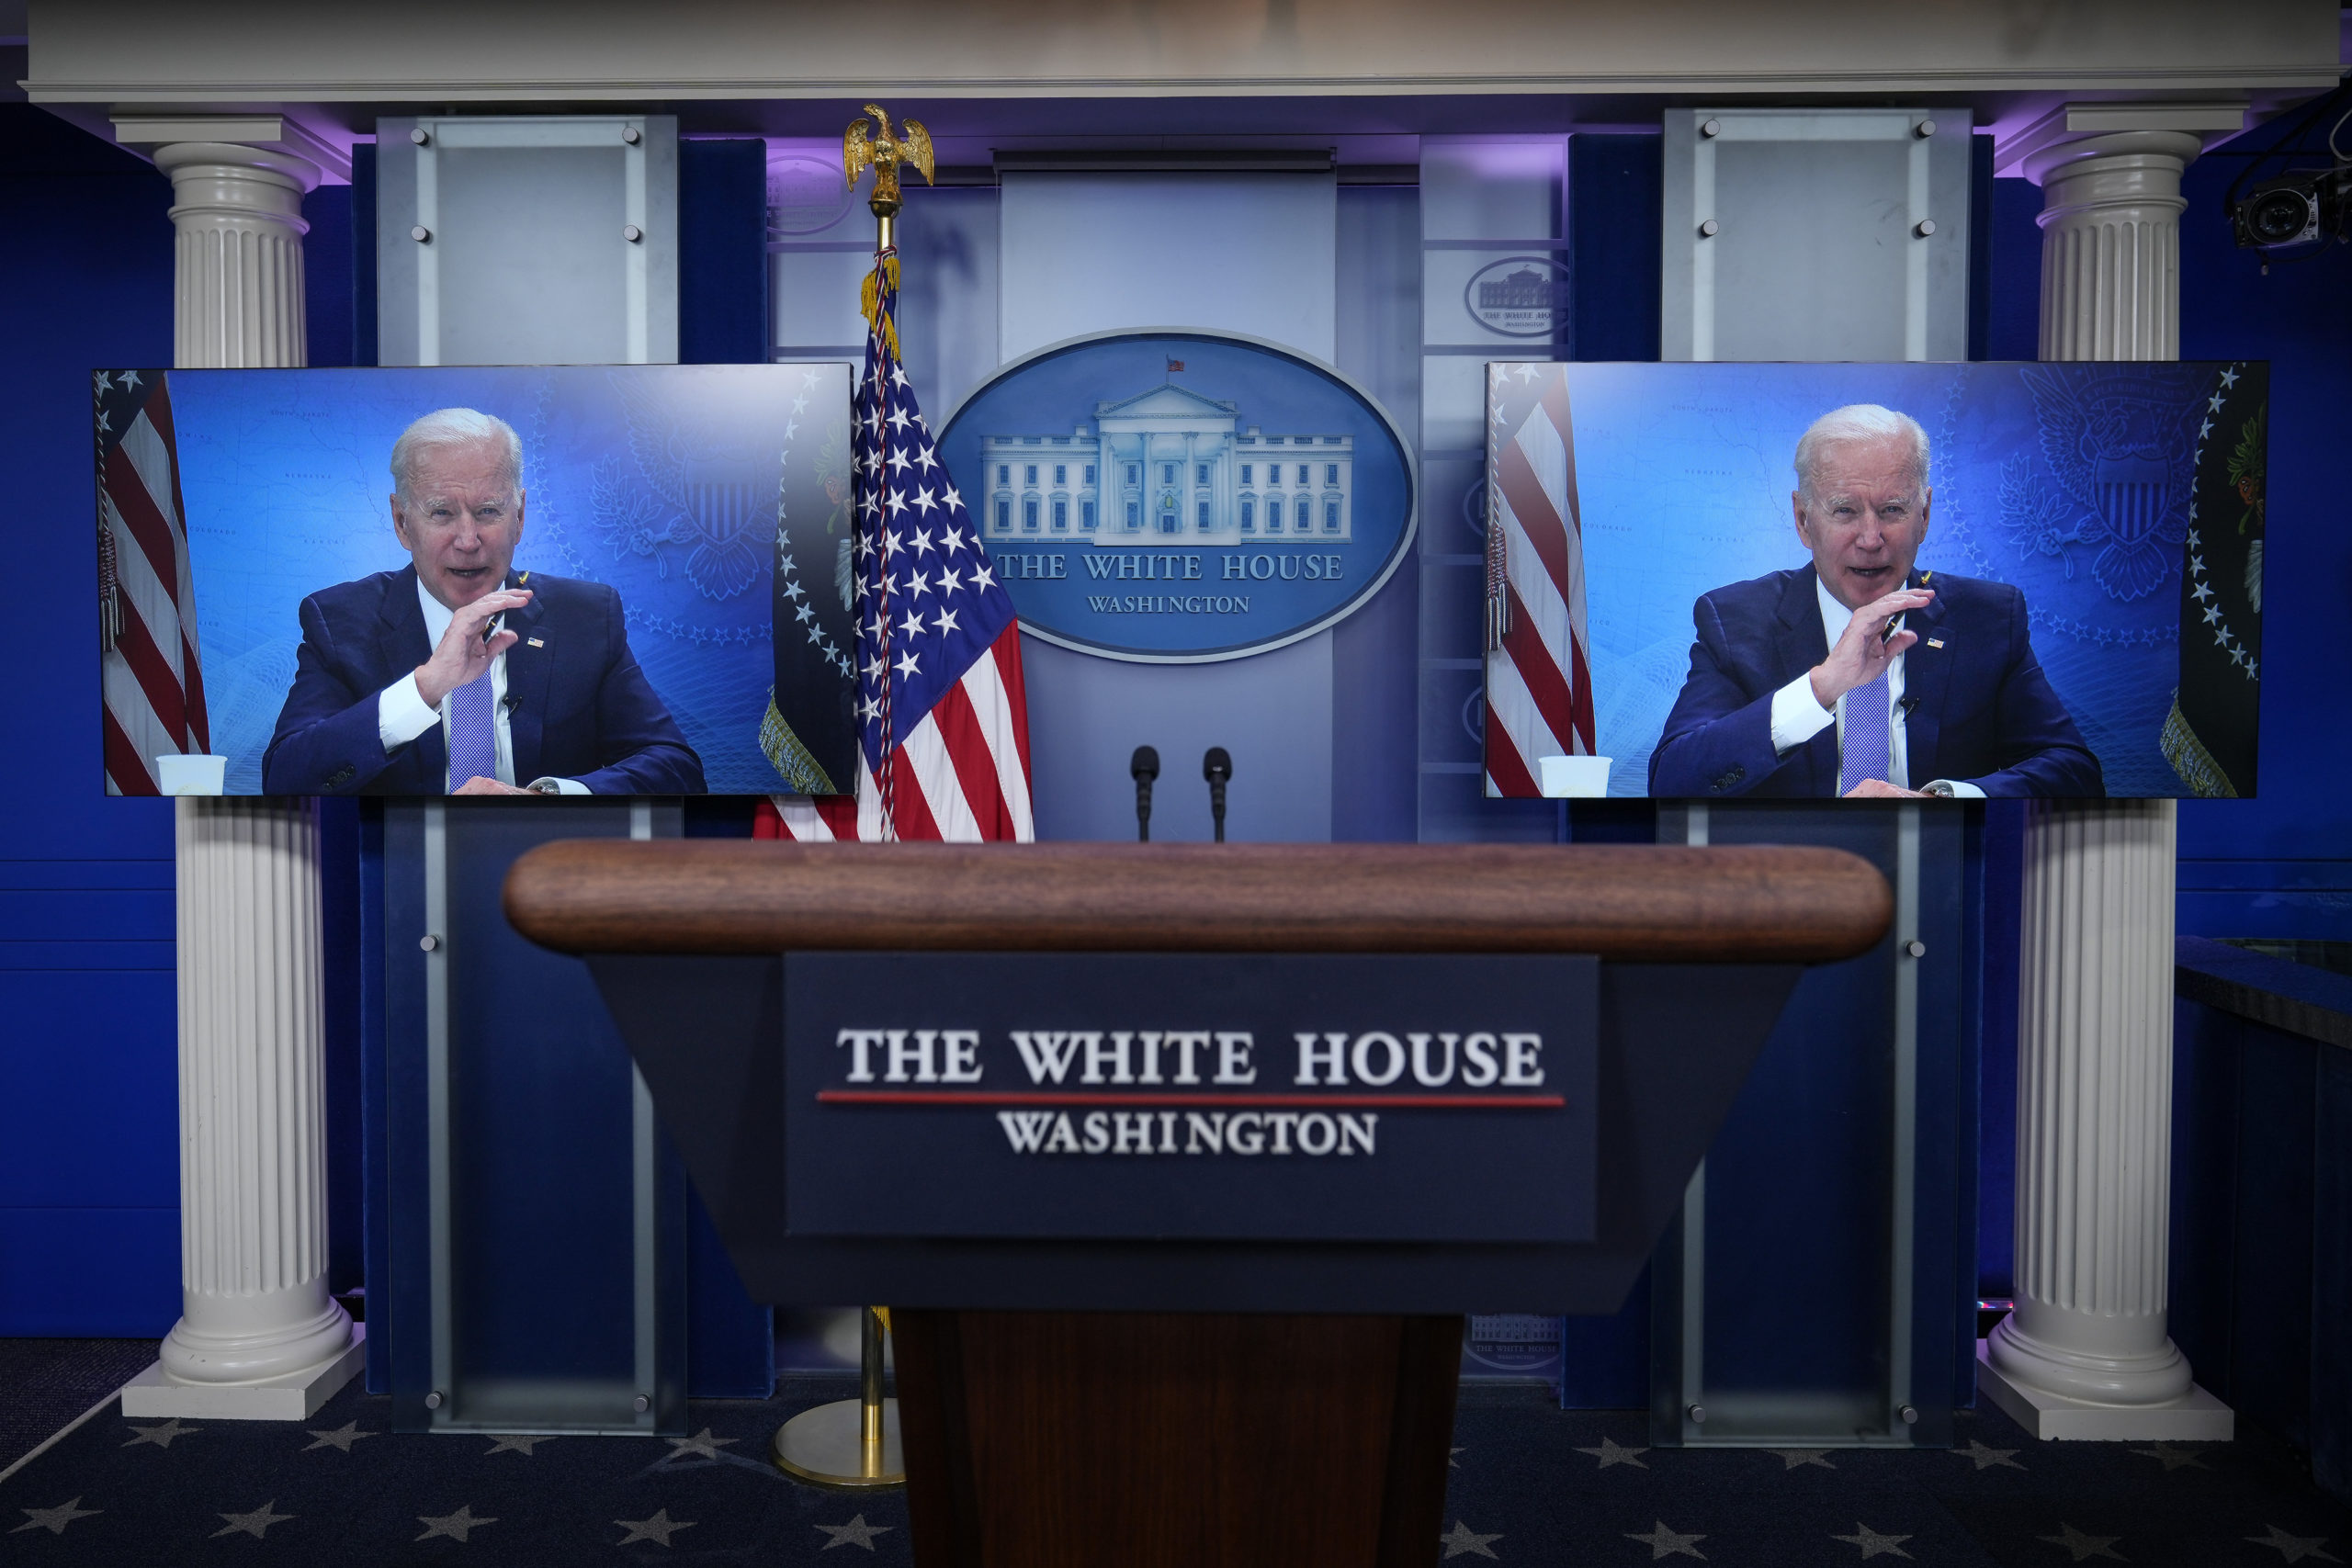 President Joe Biden is displayed on a monitor at the White House on Tuesday. (Drew Angerer/Getty Images)